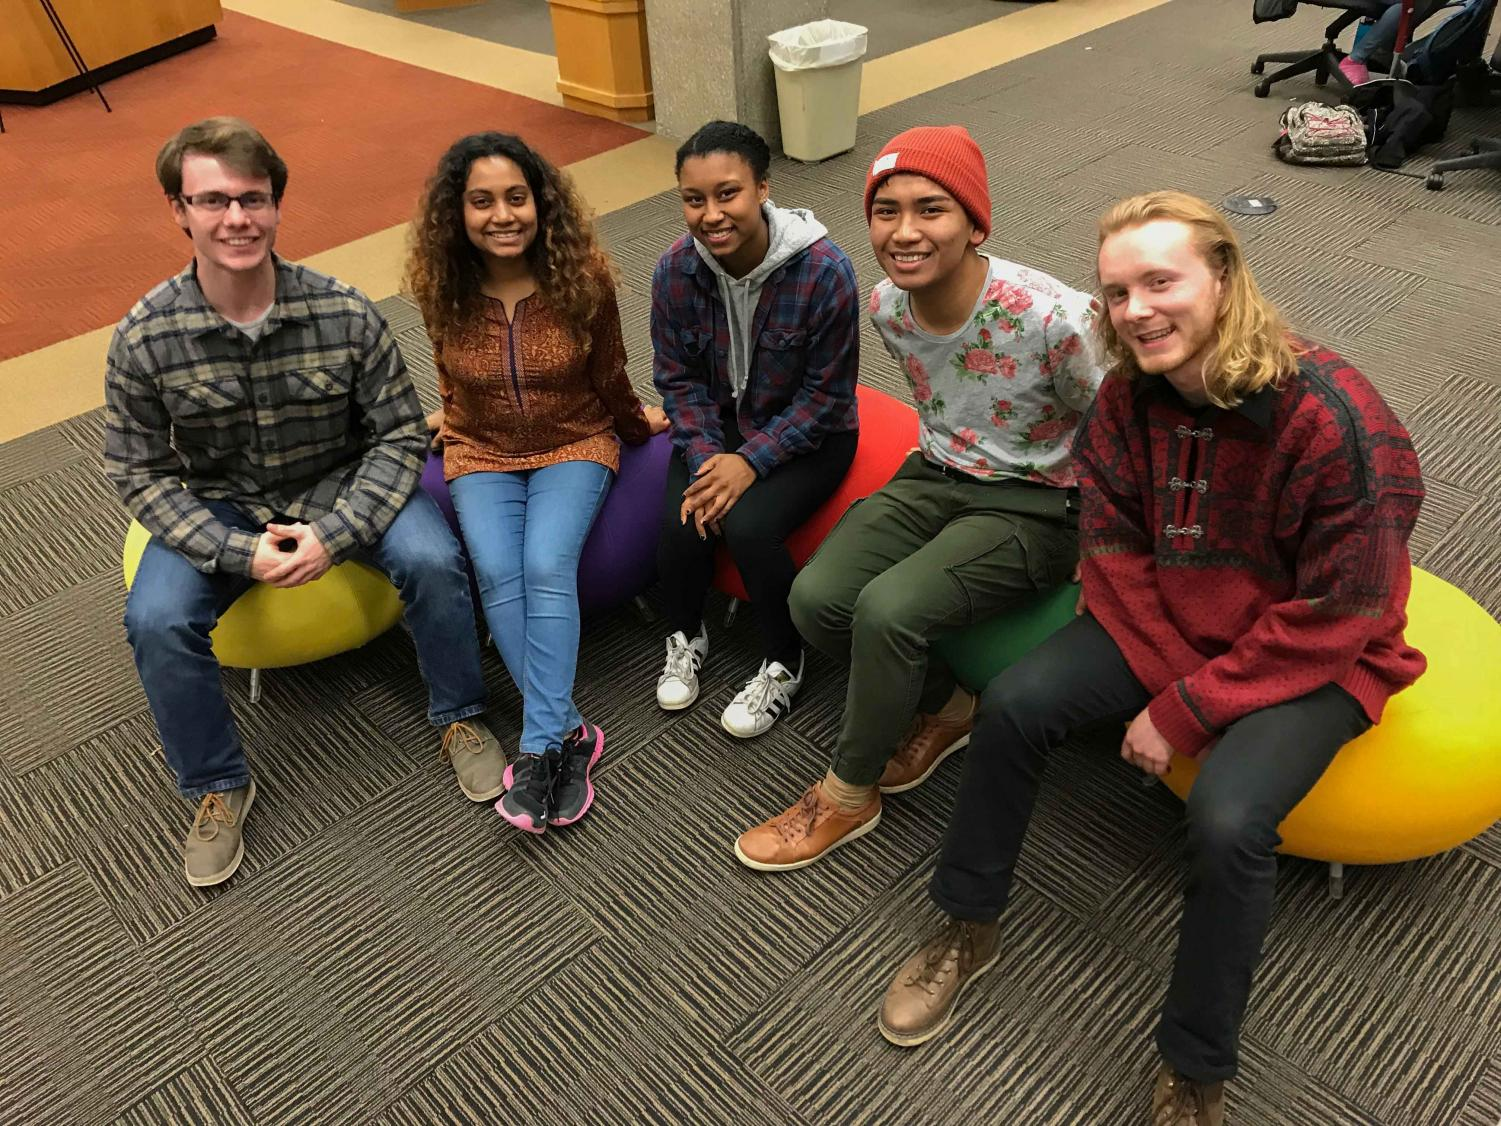 This semester's new Student Senators: College sophomore Johan Cavert, College junior Priyanka Sen, College first-year Brittany Mendez, double-degree first-year Patrick Powers, and College first-year Eddy Tumbokon.